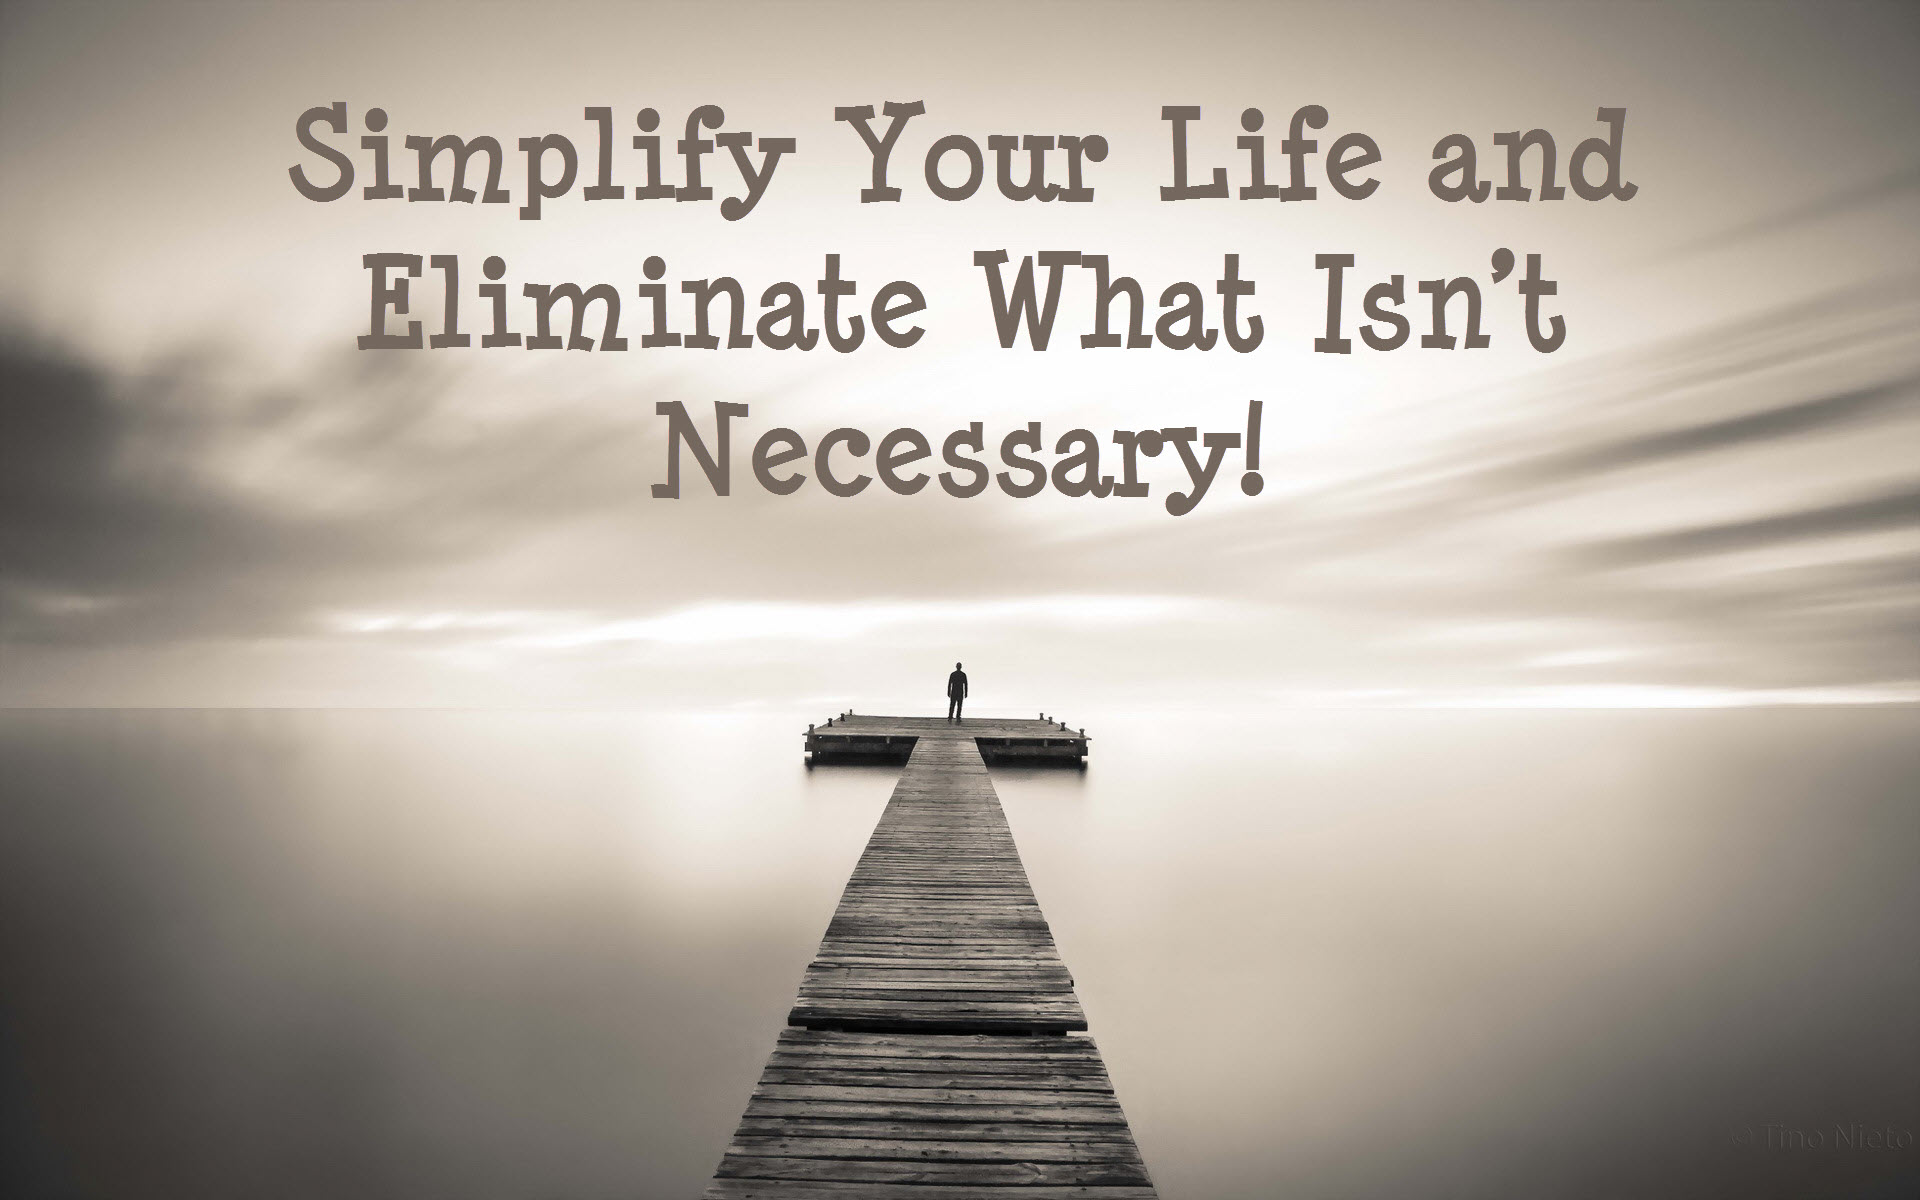 Simplify Life Quotes Simplify And Eliminate  Orlando Espinosa